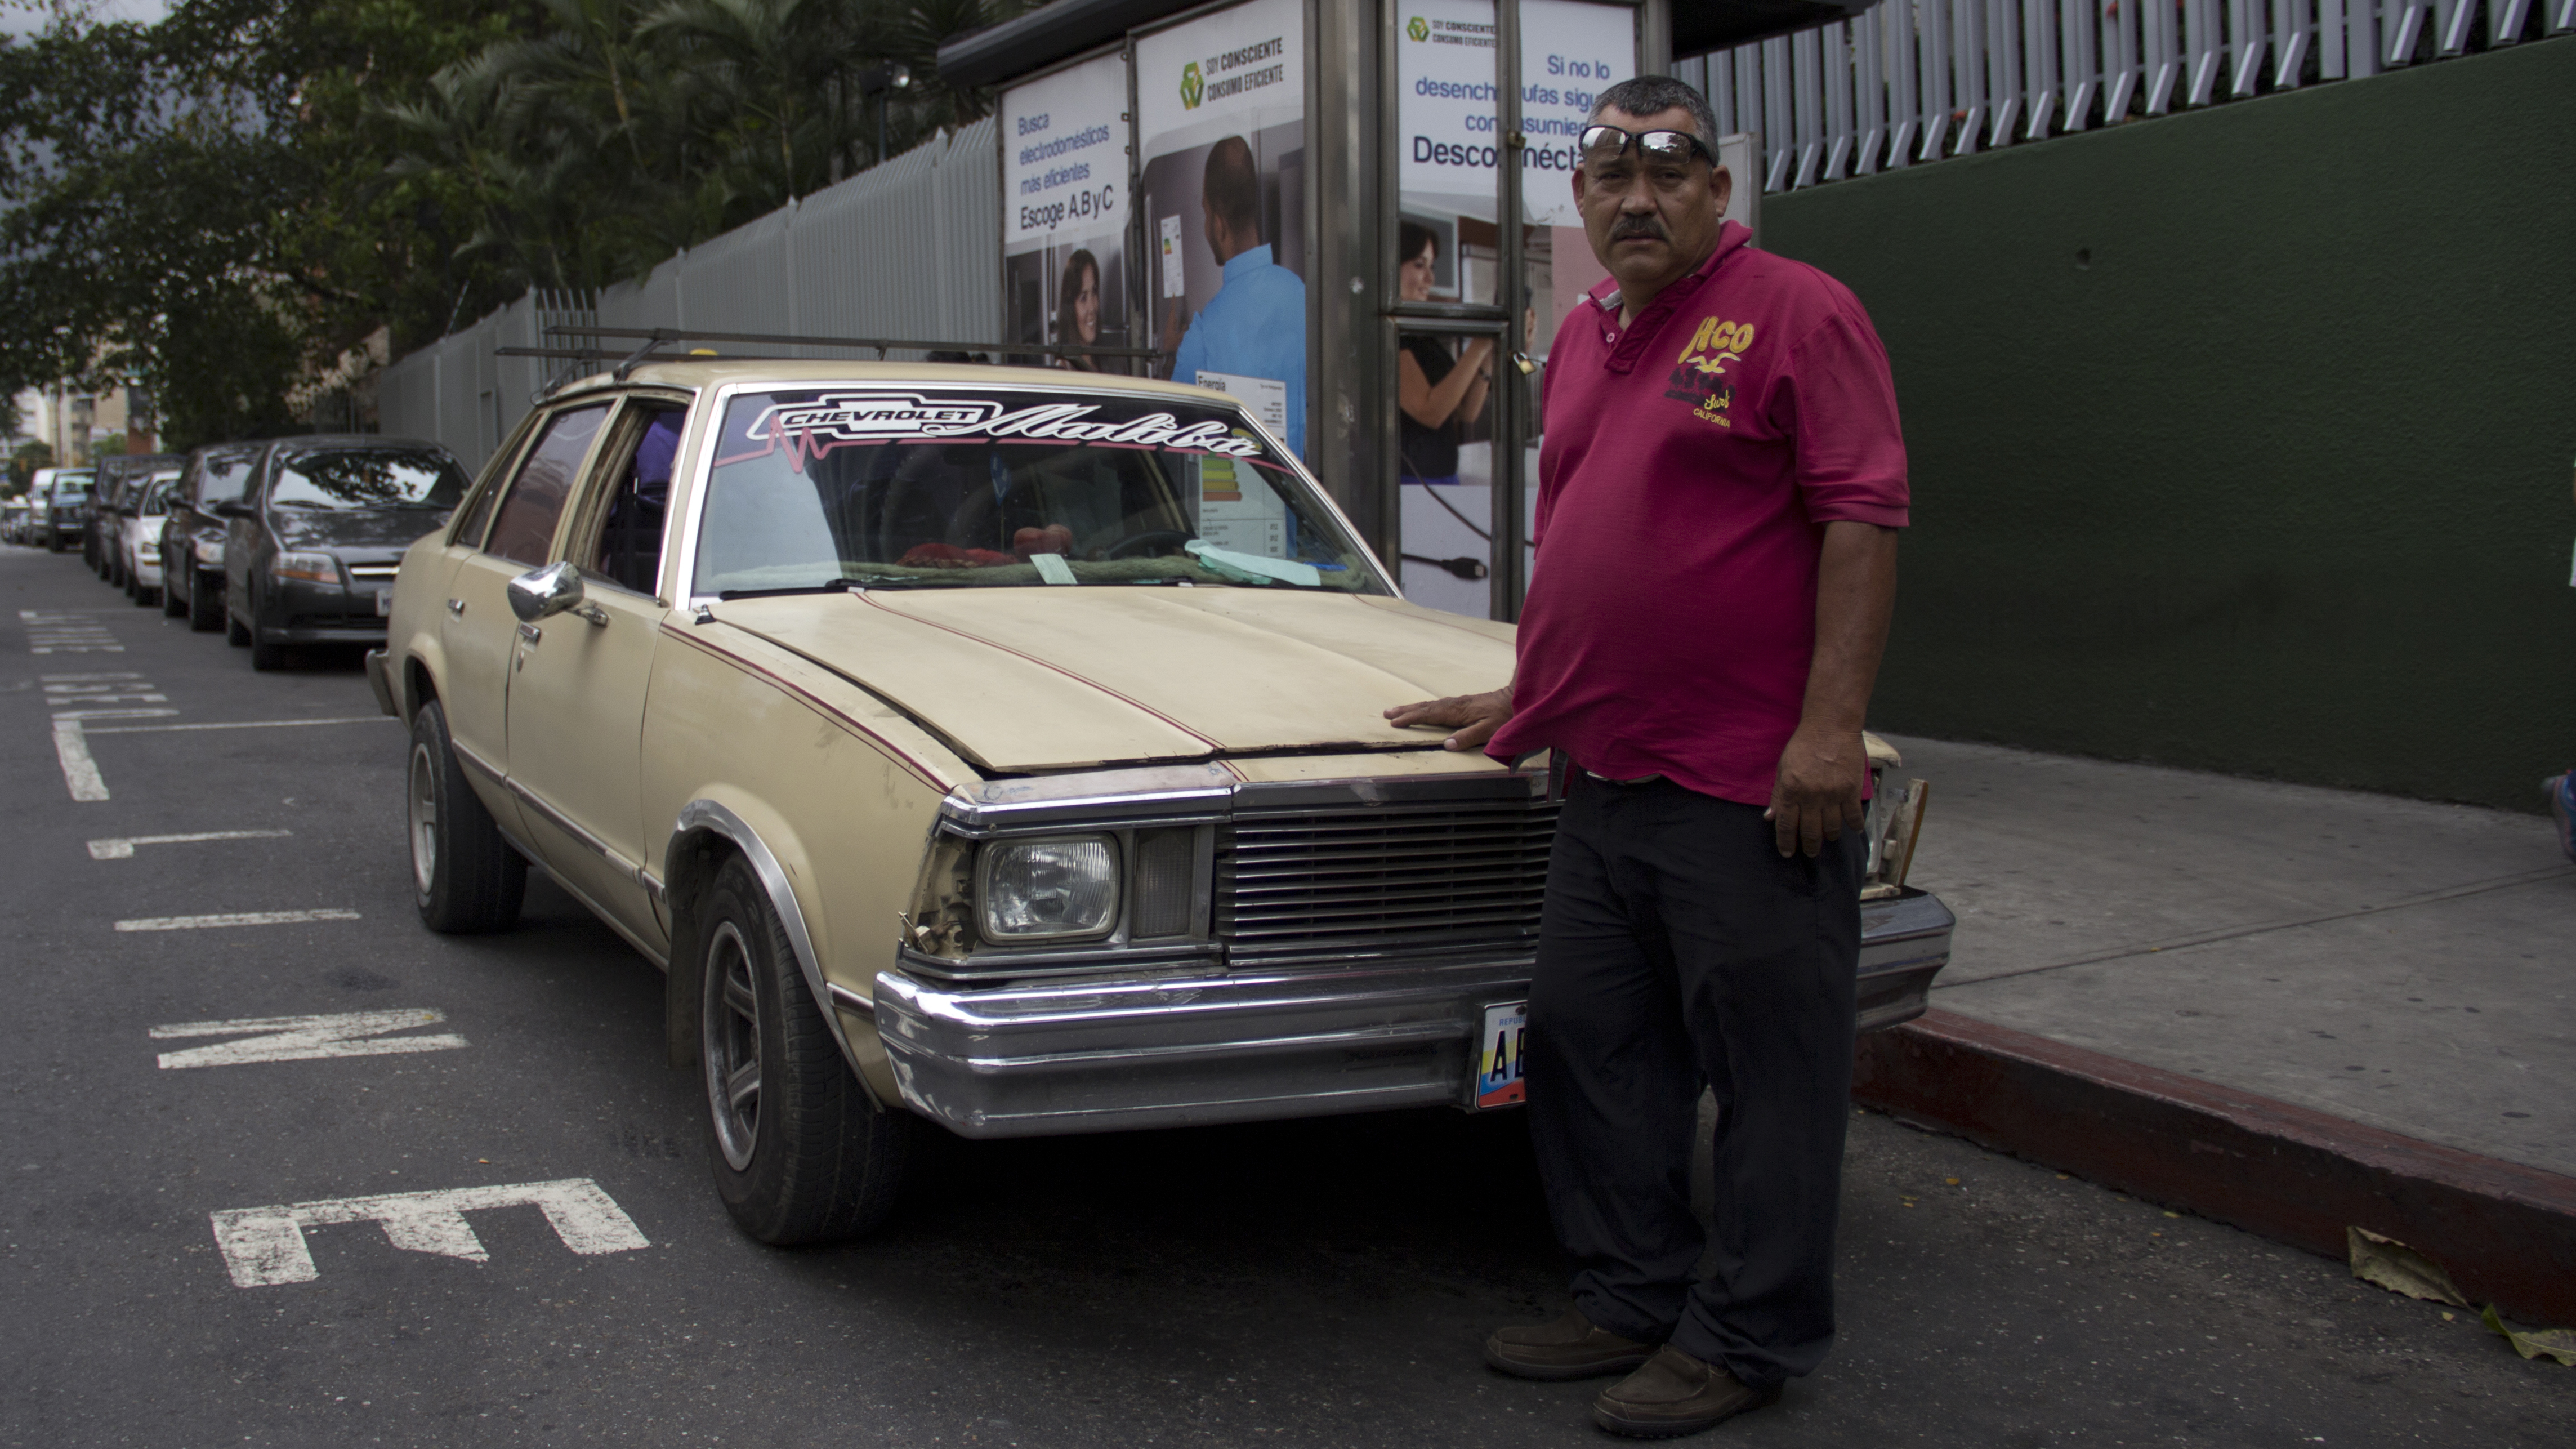 William Rivas drives his own Chevy Malibu as cab. Gas prices are so low in Venezuela that it costs him less than $1 to fill up the tank.